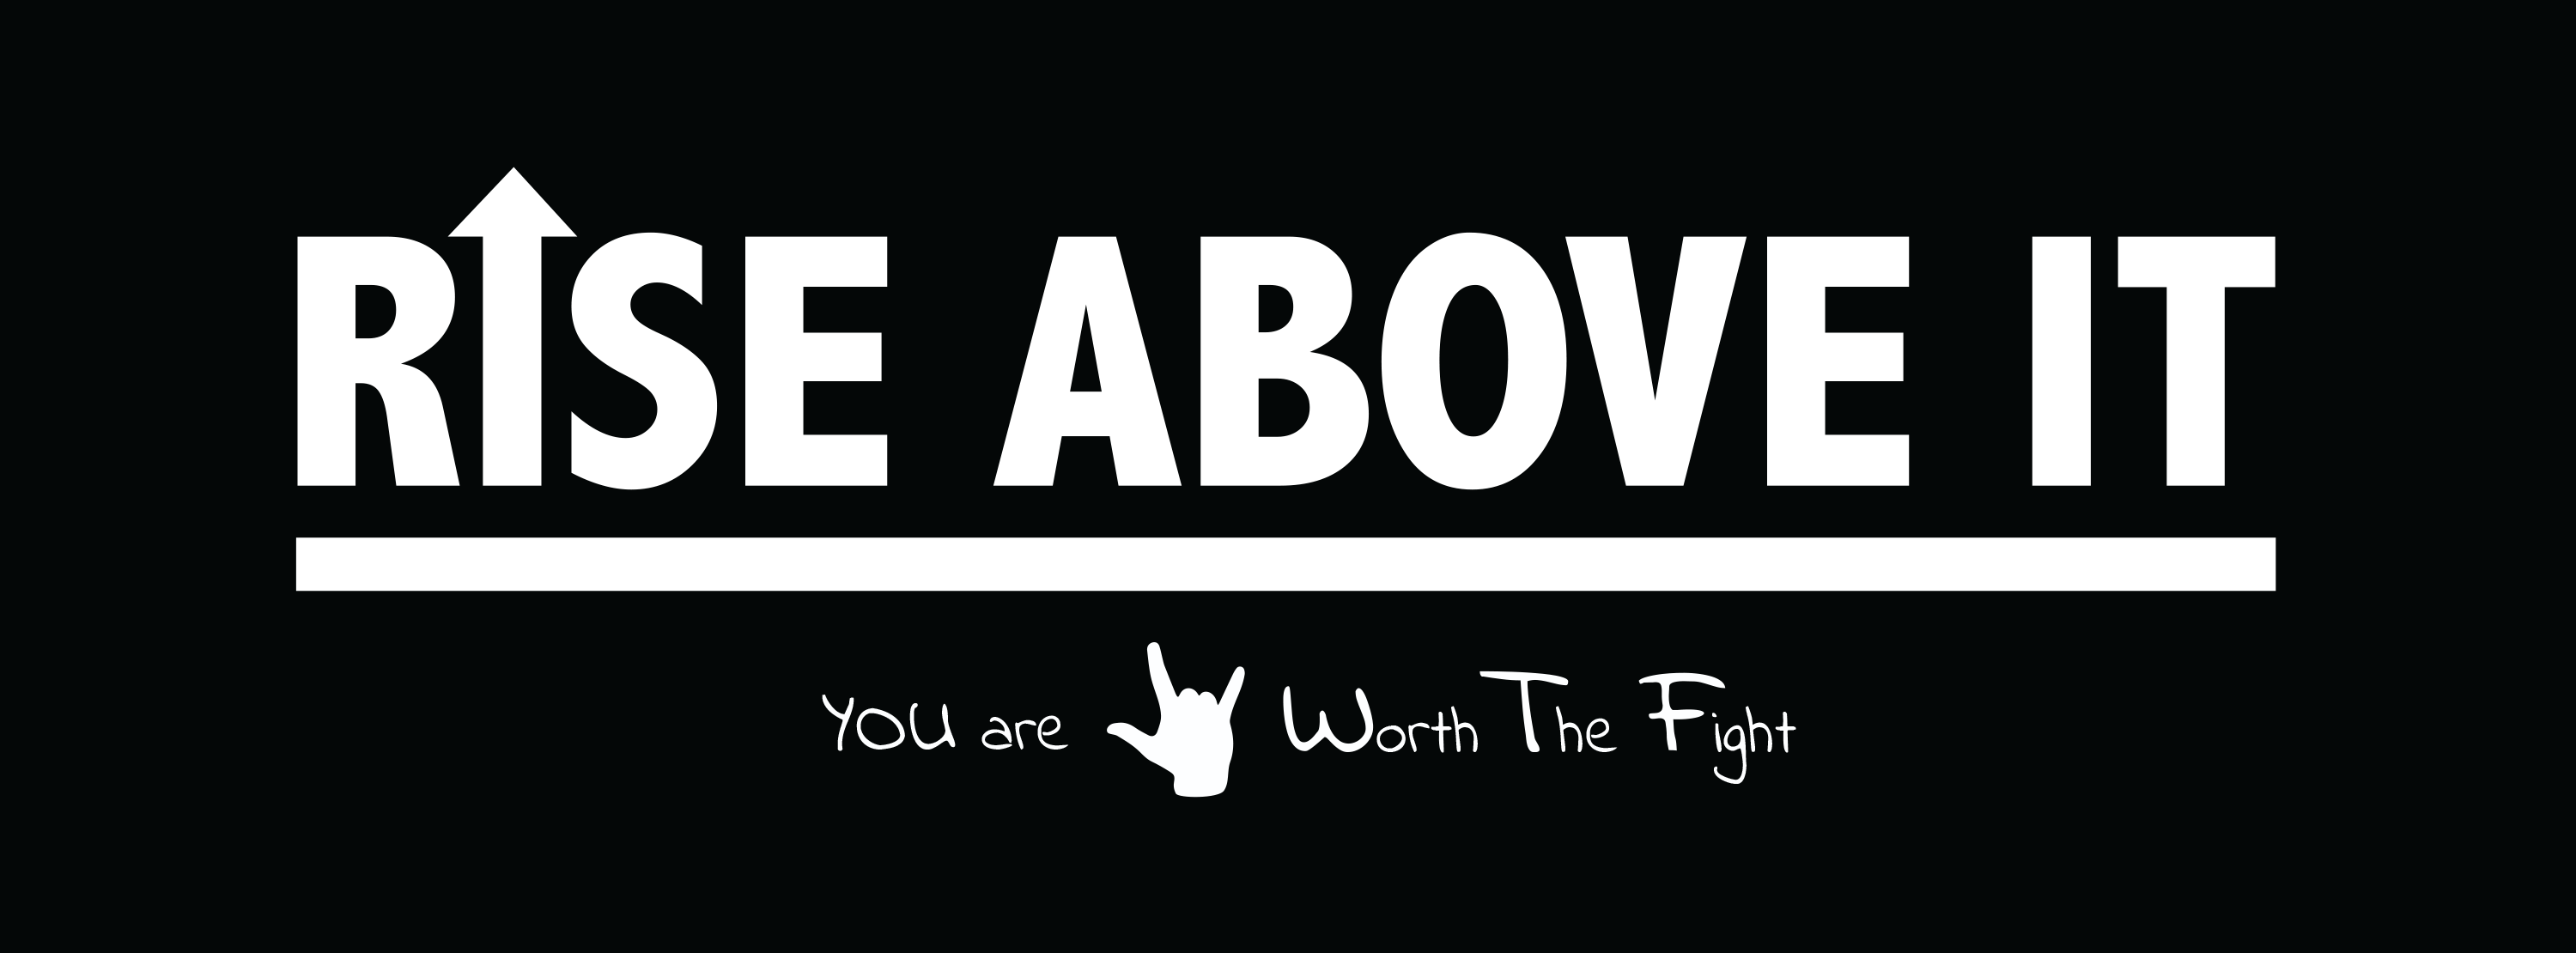 Rise Above It Movement | You Are Worth The Fight